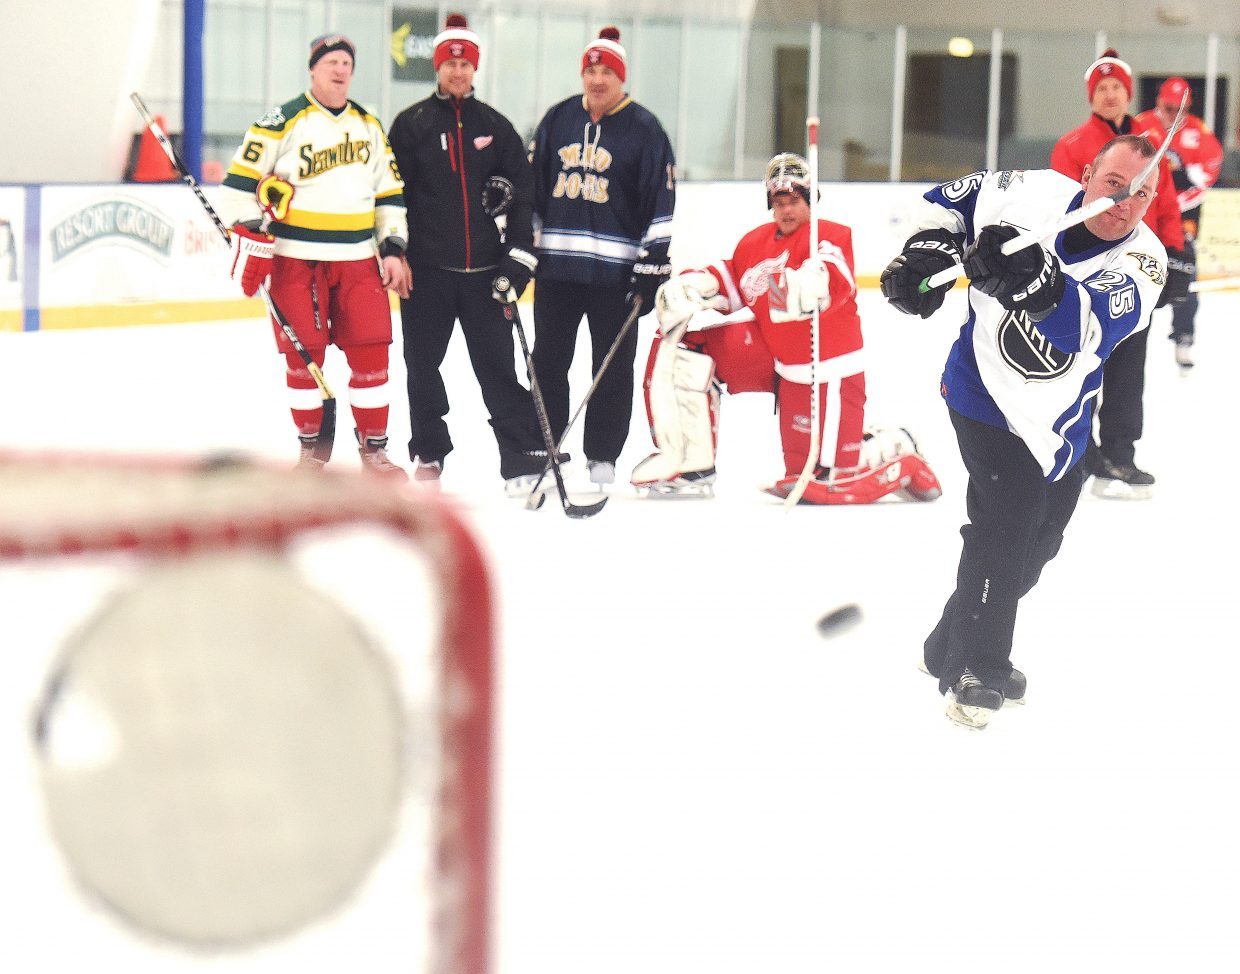 NHL alum Sergei Krivokrasov fires a shot at a target in the goal Friday night during a fundraiser for youth hockey at Howelsen Ice Arena in Steamboat Springs. Krivokrasov, a Russian, played for 450 games in a career that included 10 years in the NHL and several stints with Russian clubs. He was among the skaters who took part in the fundraiser on Friday. The event continues today with a game between former players from the Detroit Red Wings and the Chicago Blackhawks.